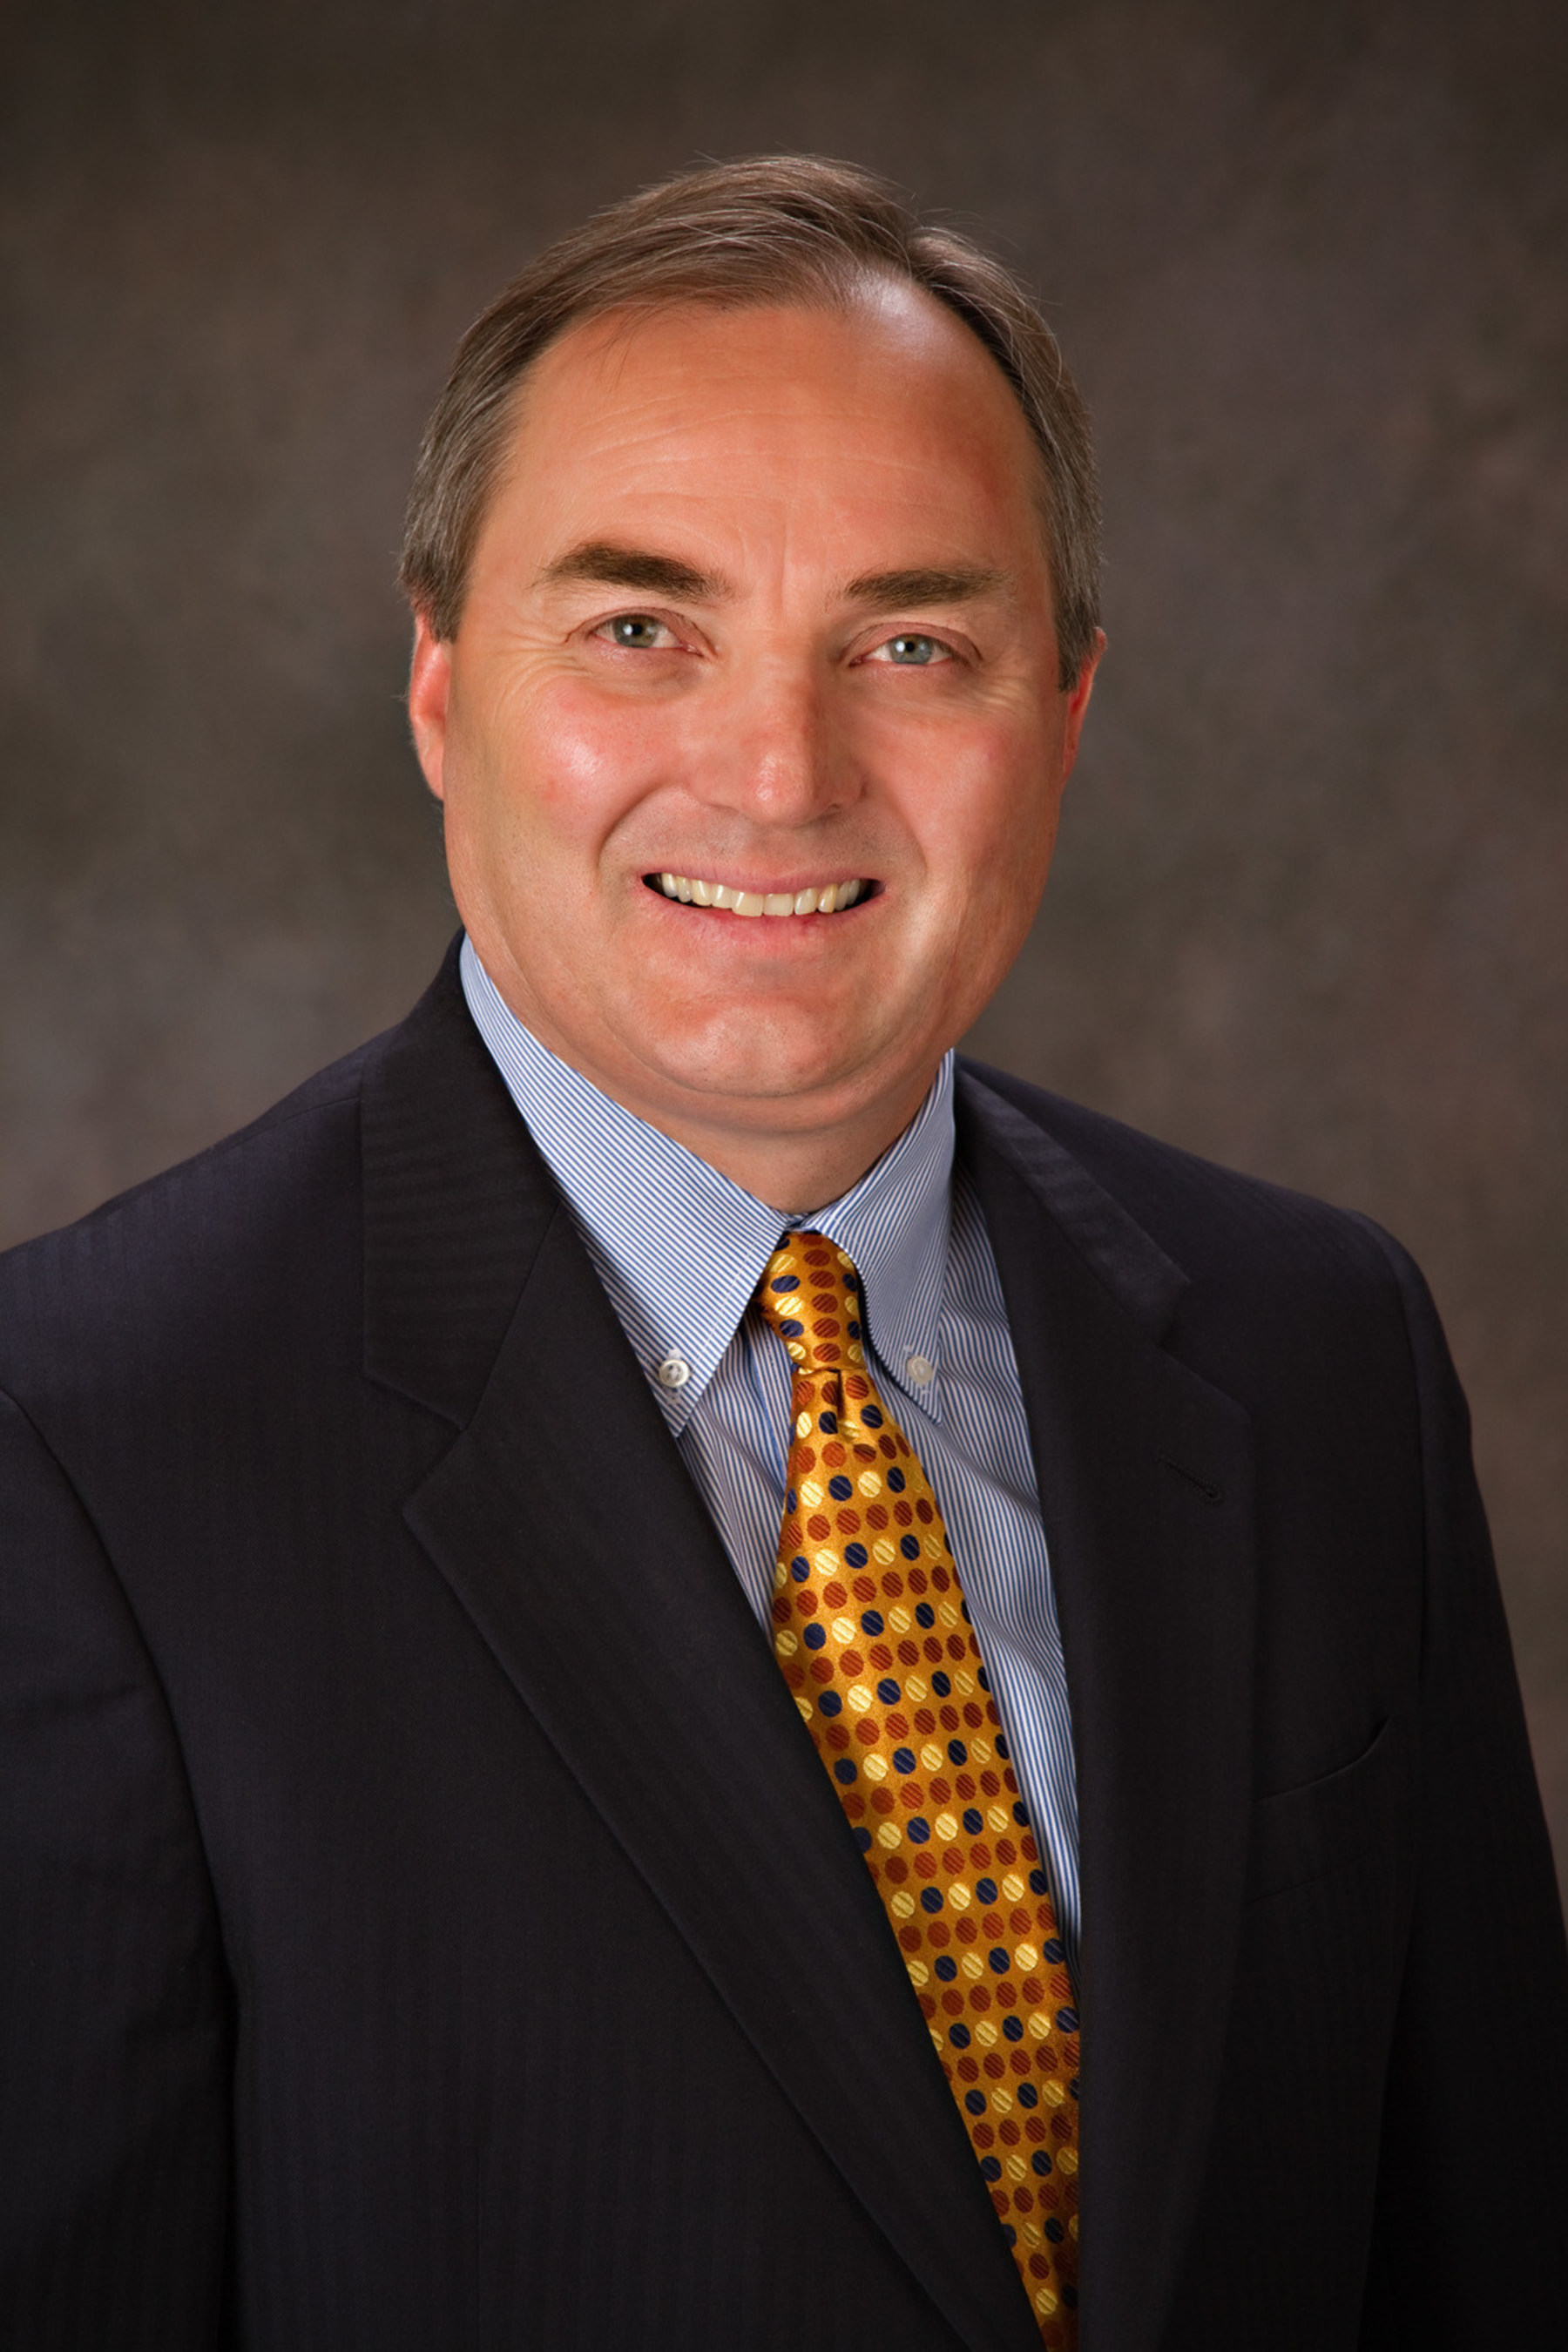 Lyle Hogg appointed as the new president of Piedmont Airlines